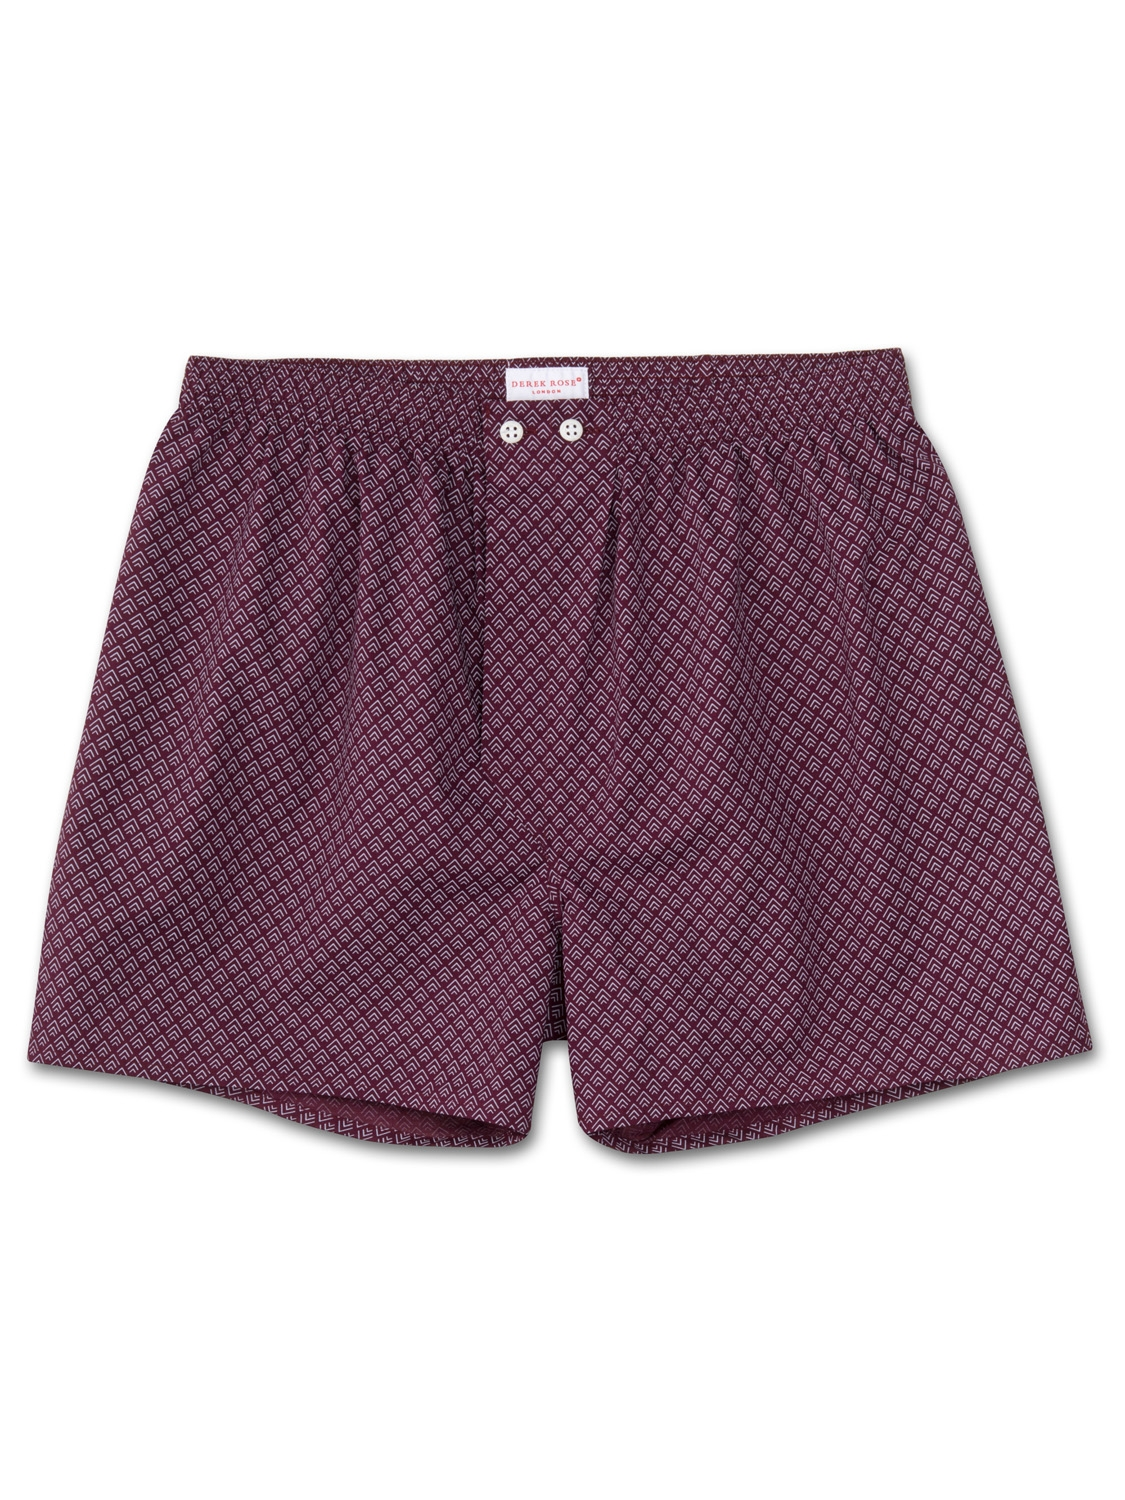 Derek Rose Men's Classic Fit Boxer Shorts Nelson 66 Cotton Batiste Burgundy